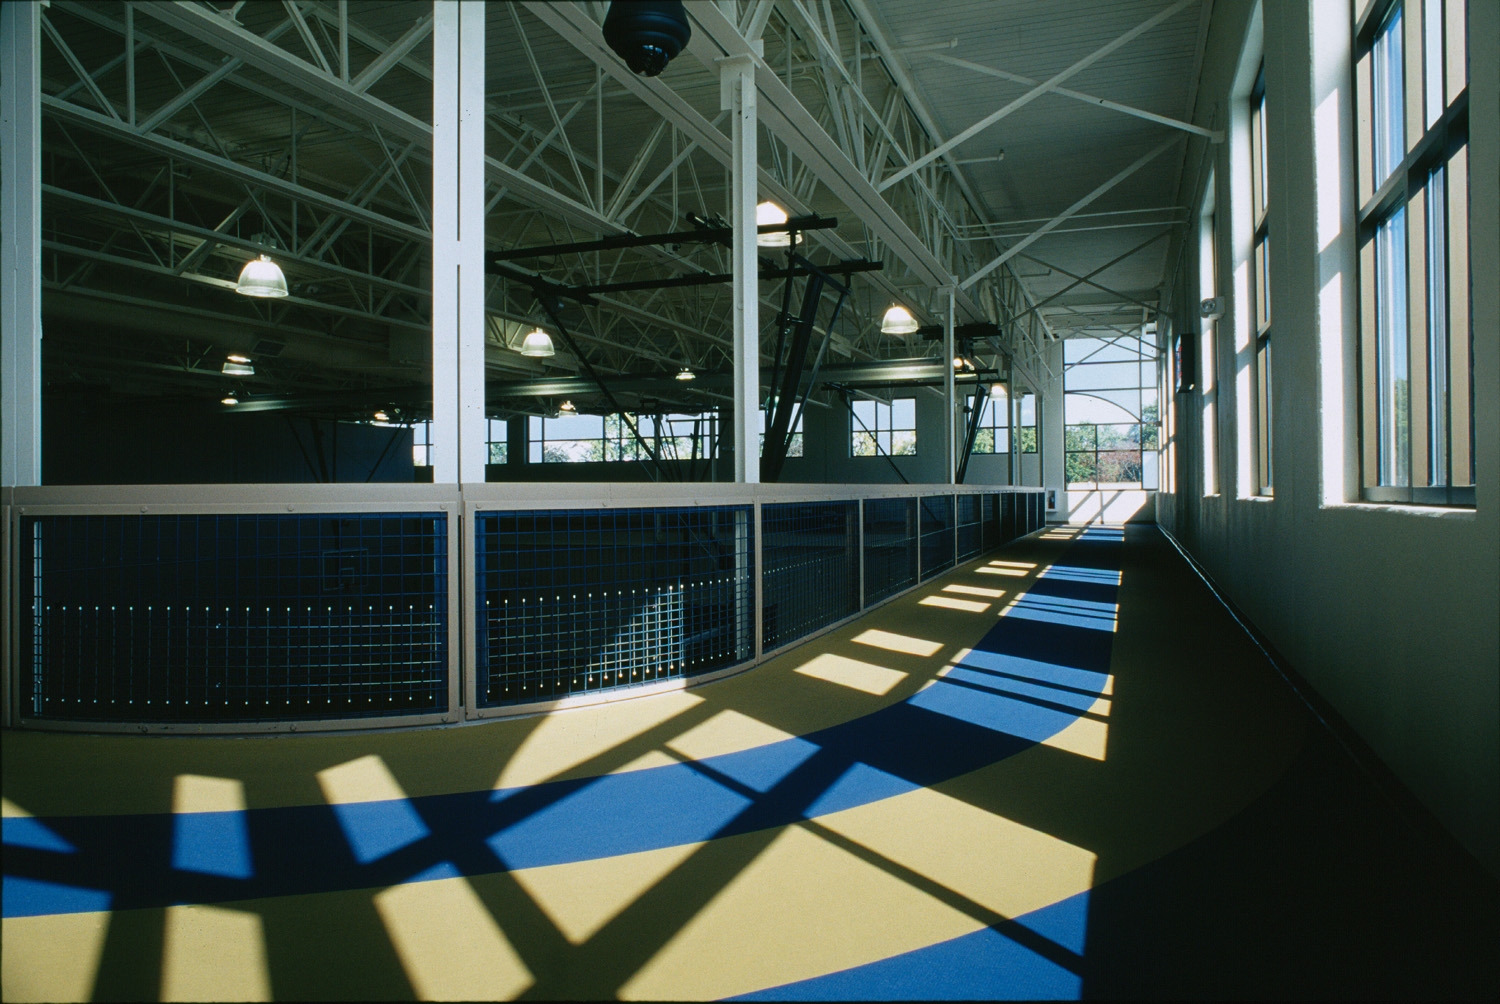 2000-046-34 Downers Grove Rec Center int running track.jpg